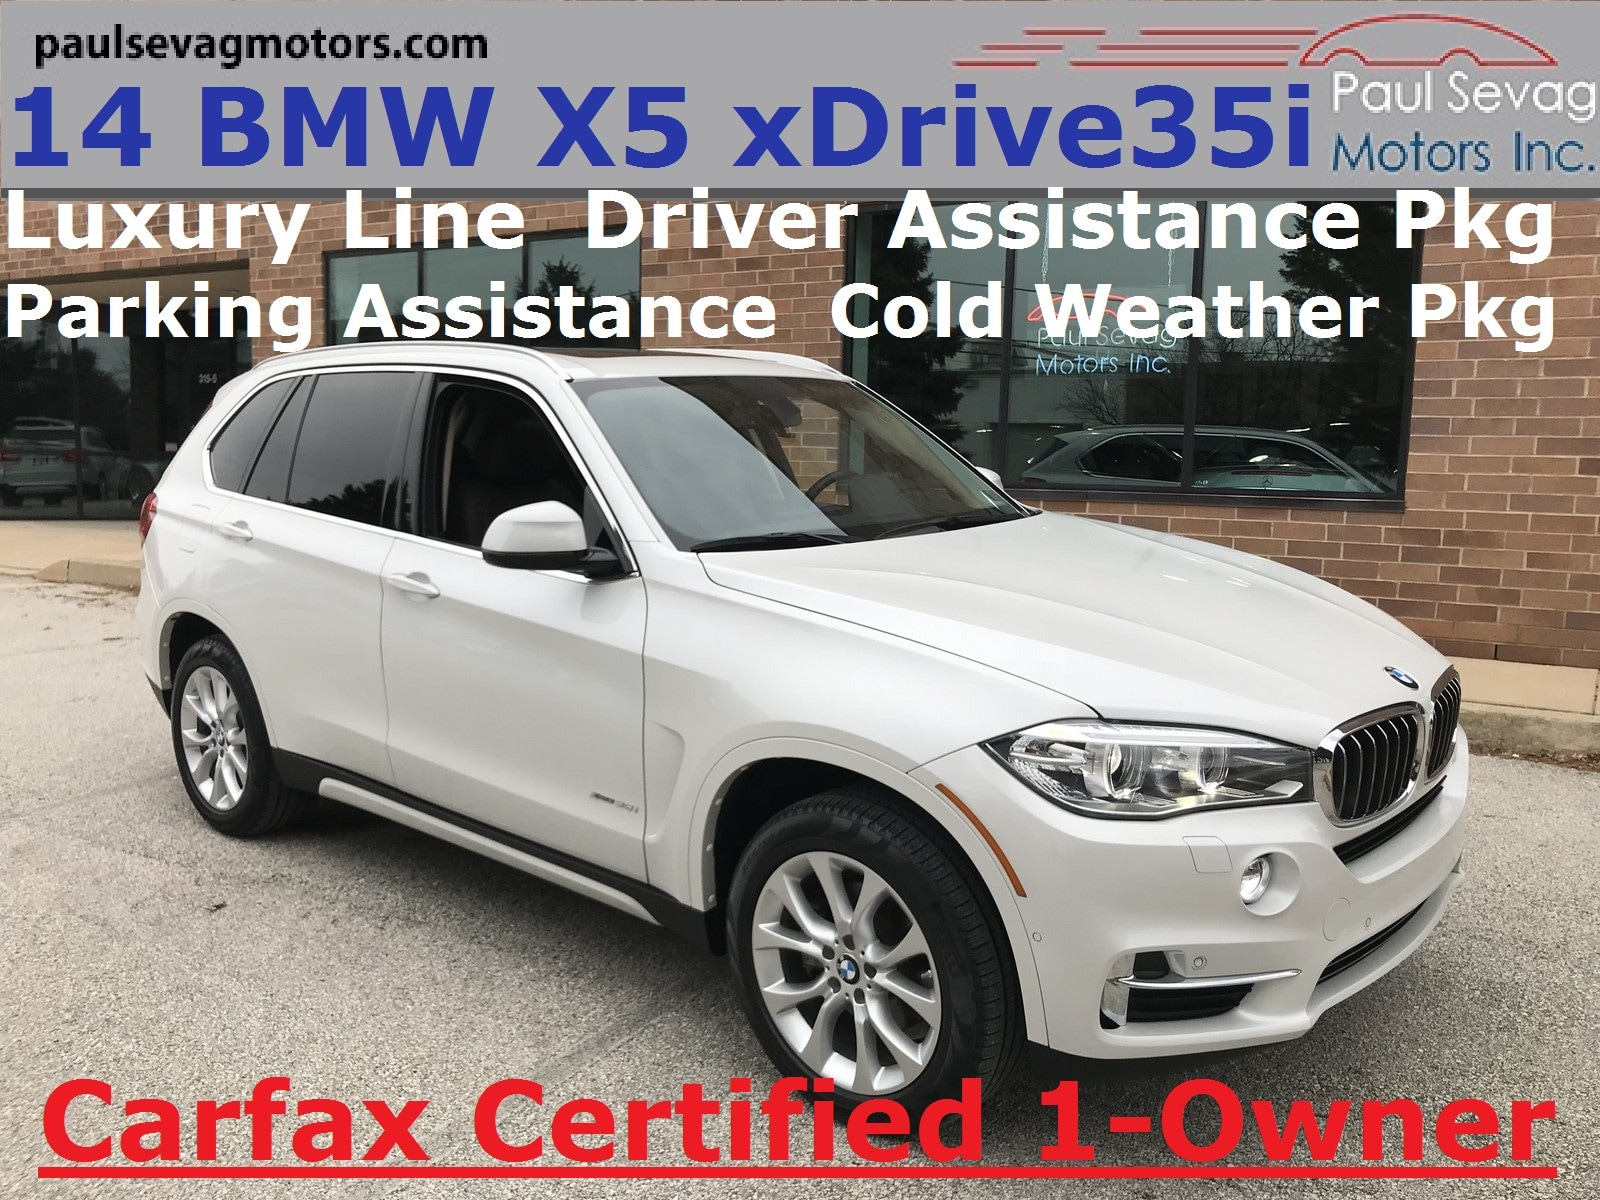 2014 BMW X5 xDrive35i Luxury Line Driver Assistance/Cold Weather Pkgs/Parking Assist SAV